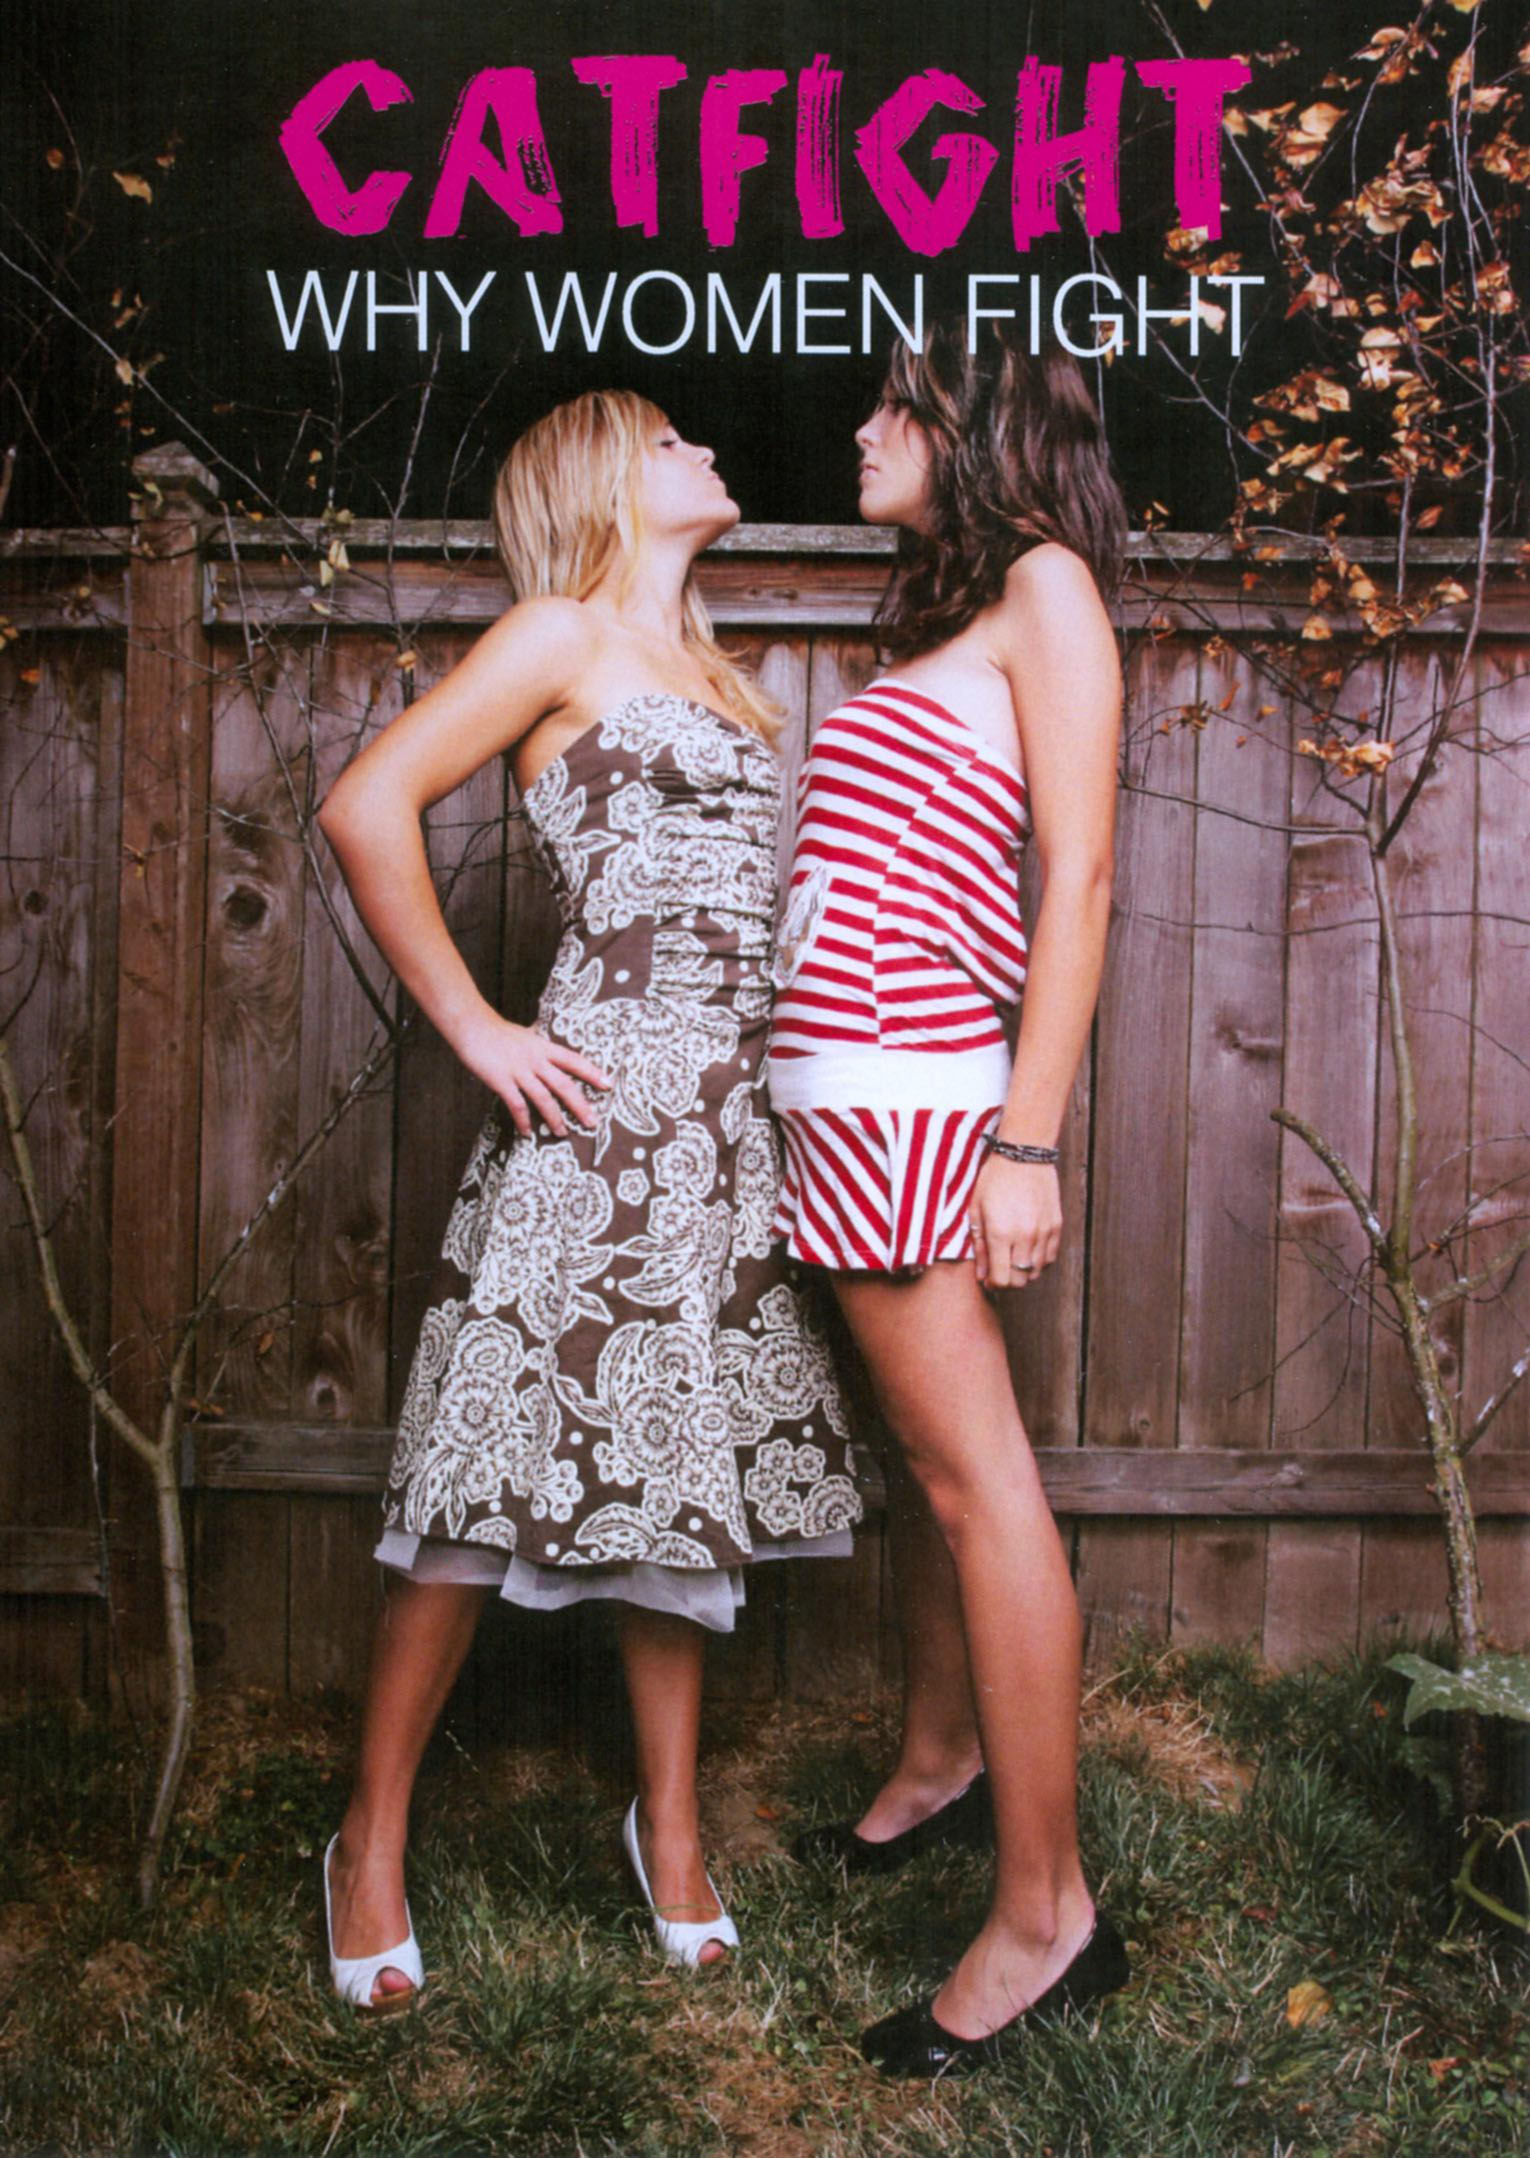 Catfight: Why Women Fight